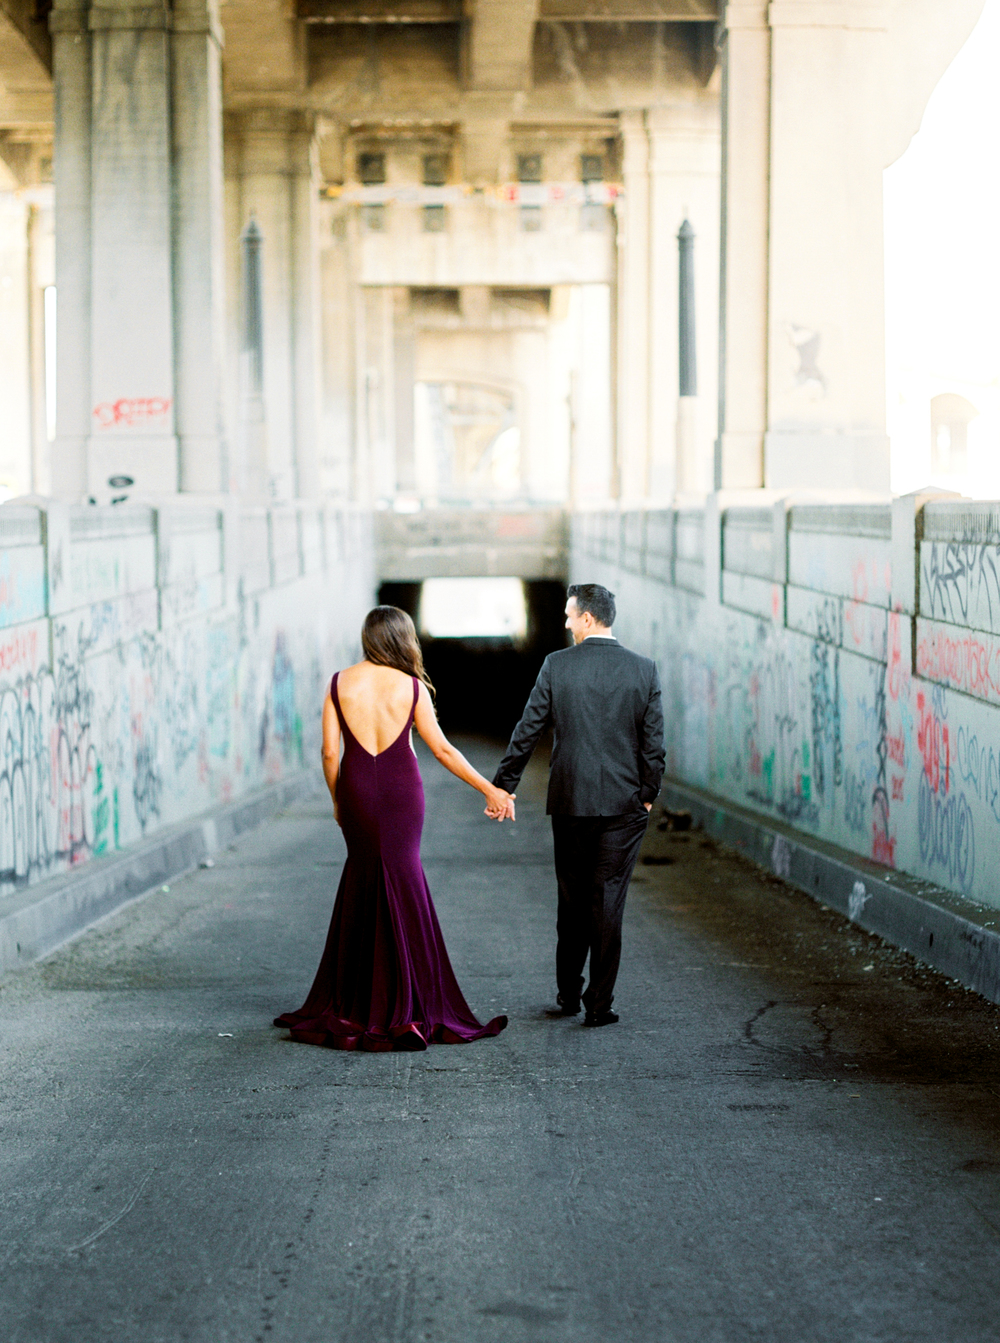 downtown_losangeles_engagement_photos_chantepaul-39.jpg